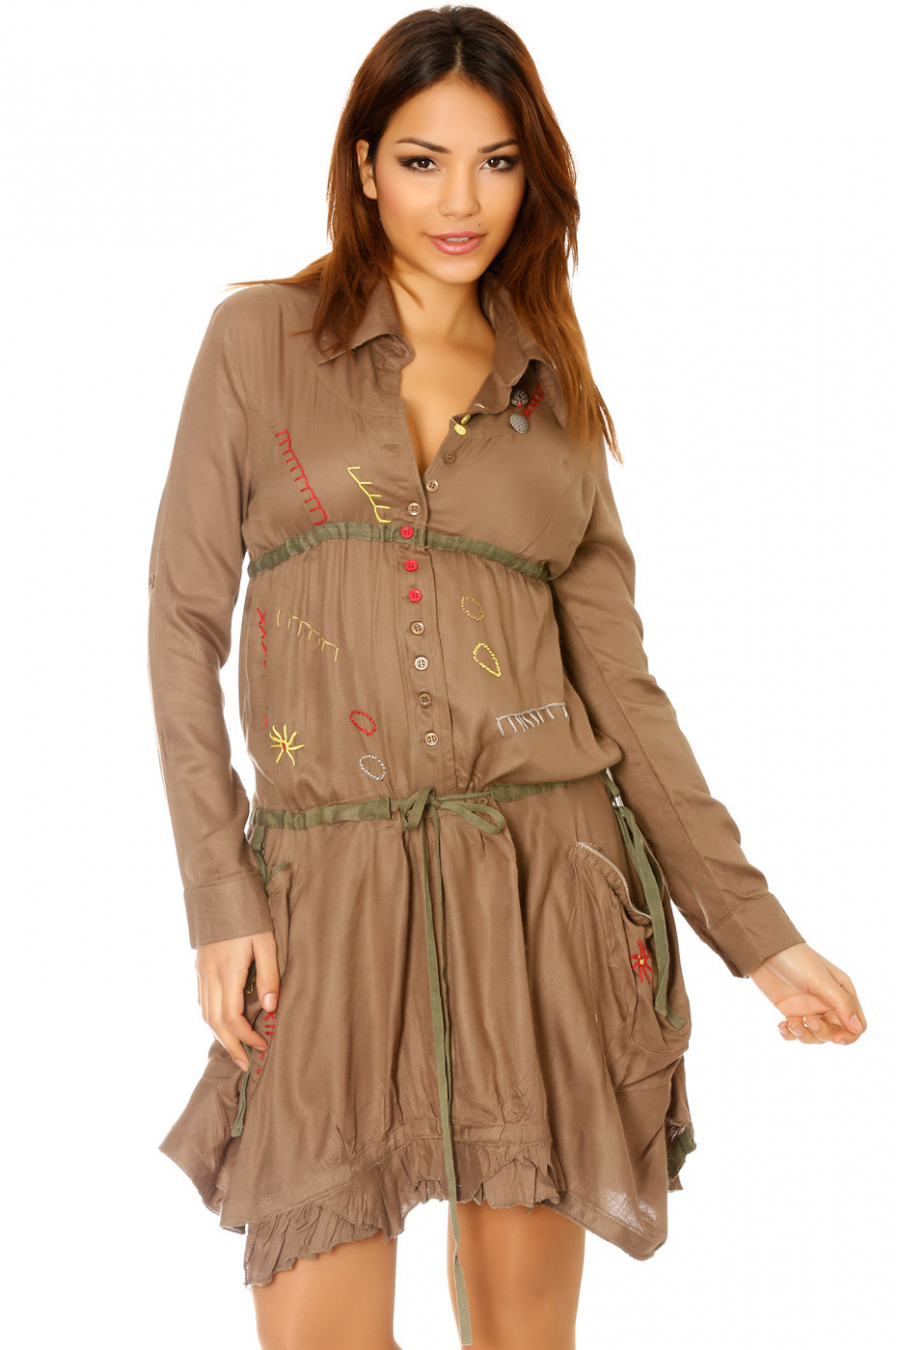 Buttoned taupe tunic dress with embroidery. Low price women's clothing 921